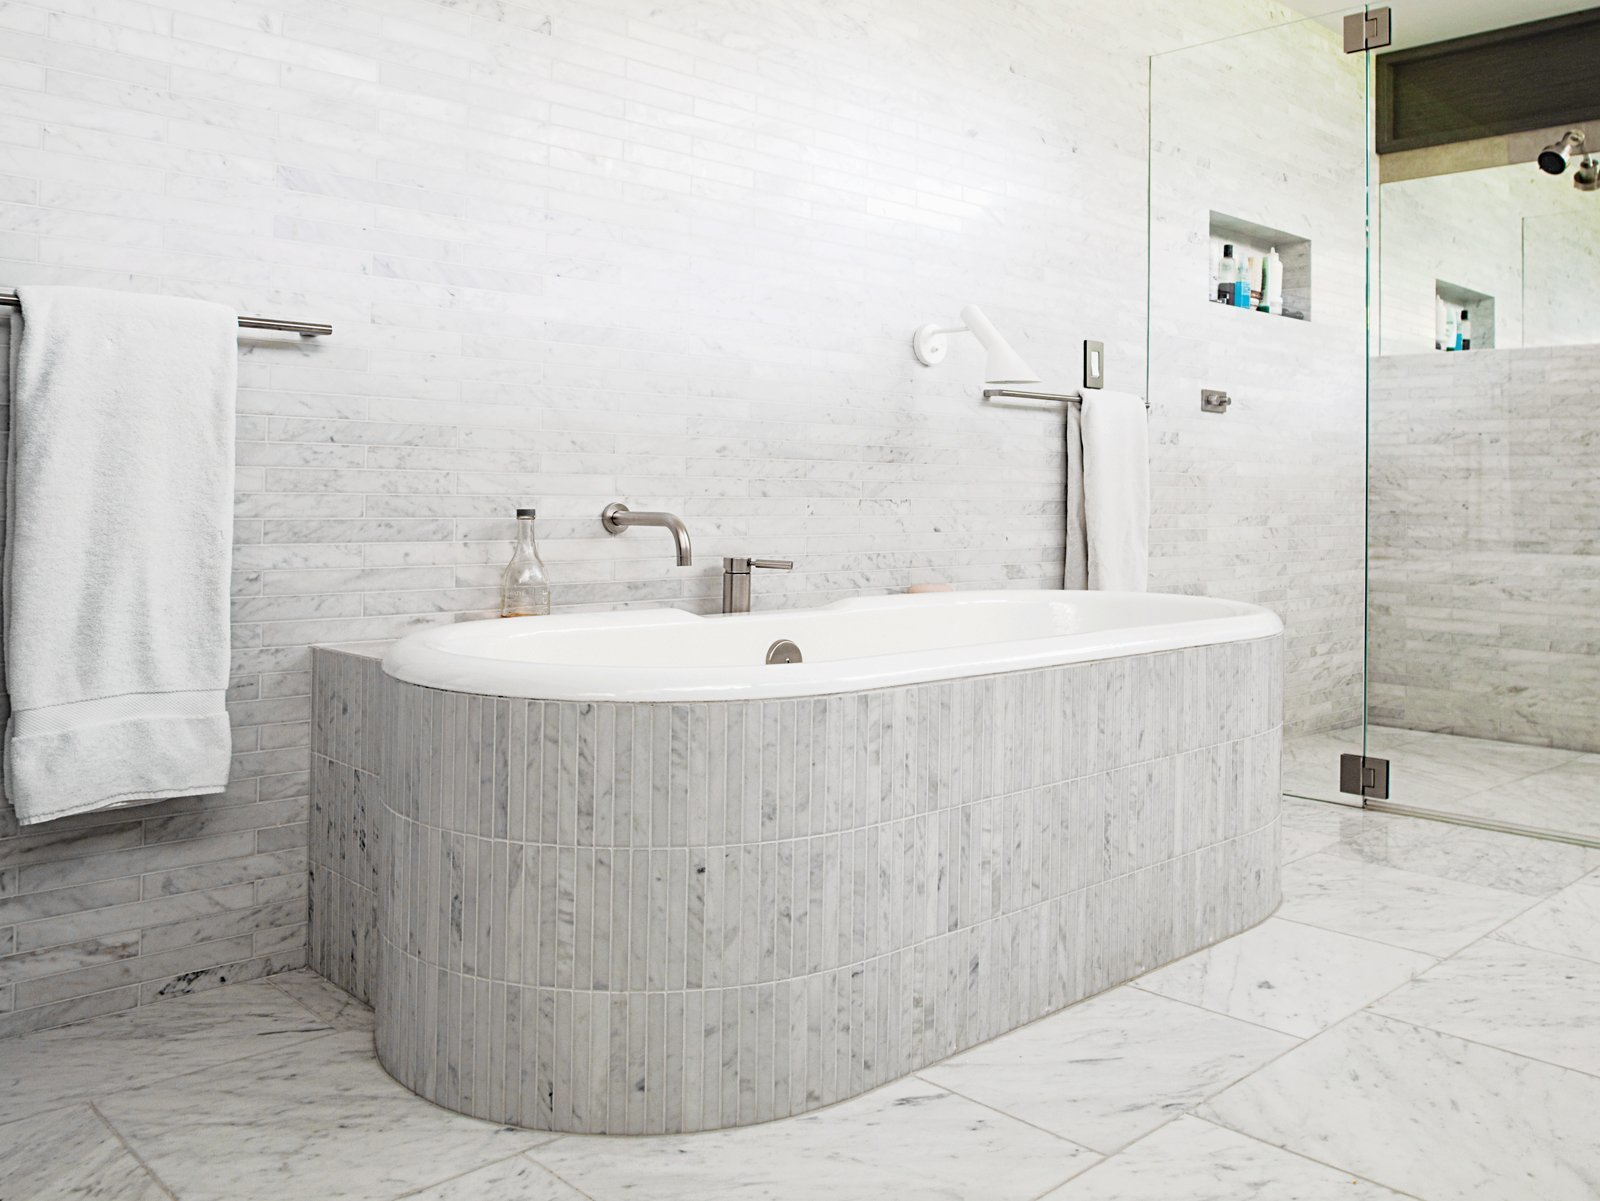 Discover 9 Modern Ways to Use Marble in Your Bathroom - Dwell